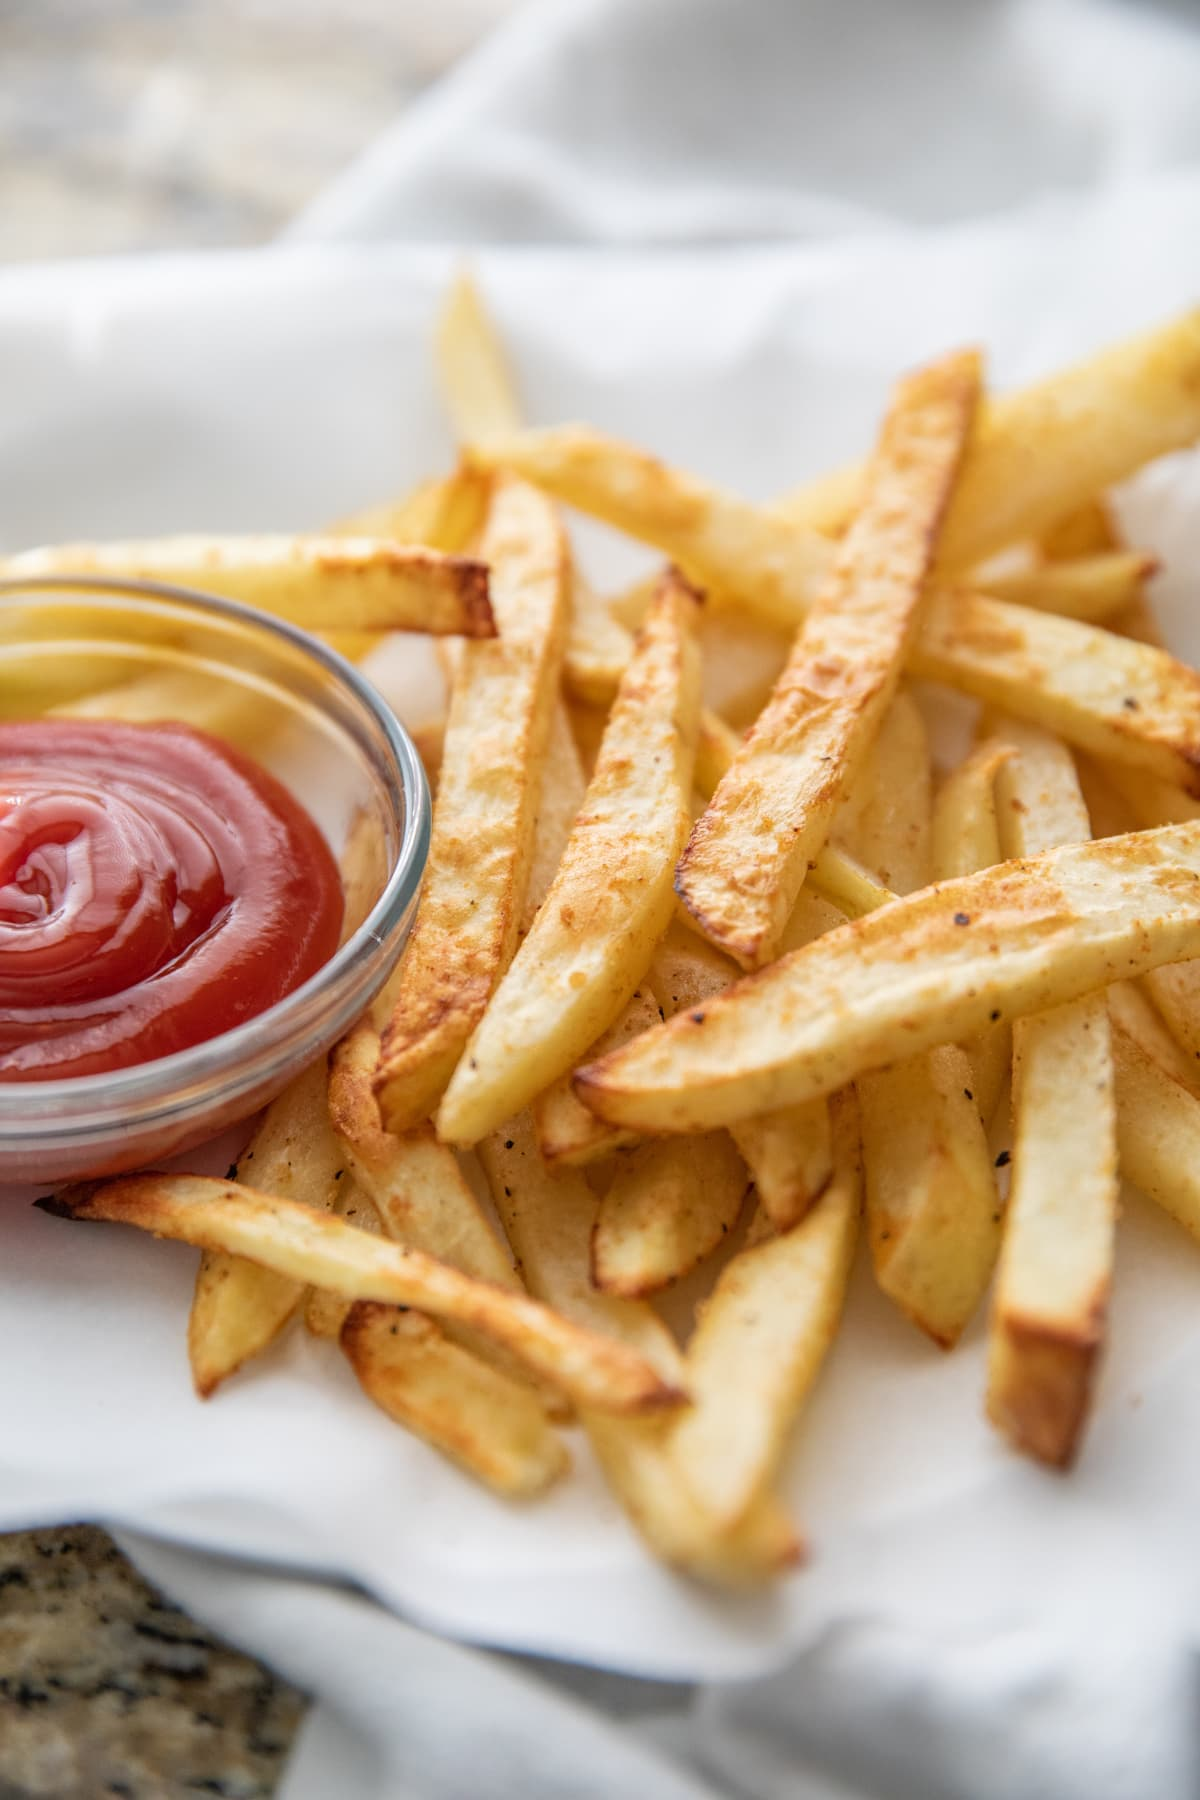 air fryer french fries on plate with ketchup